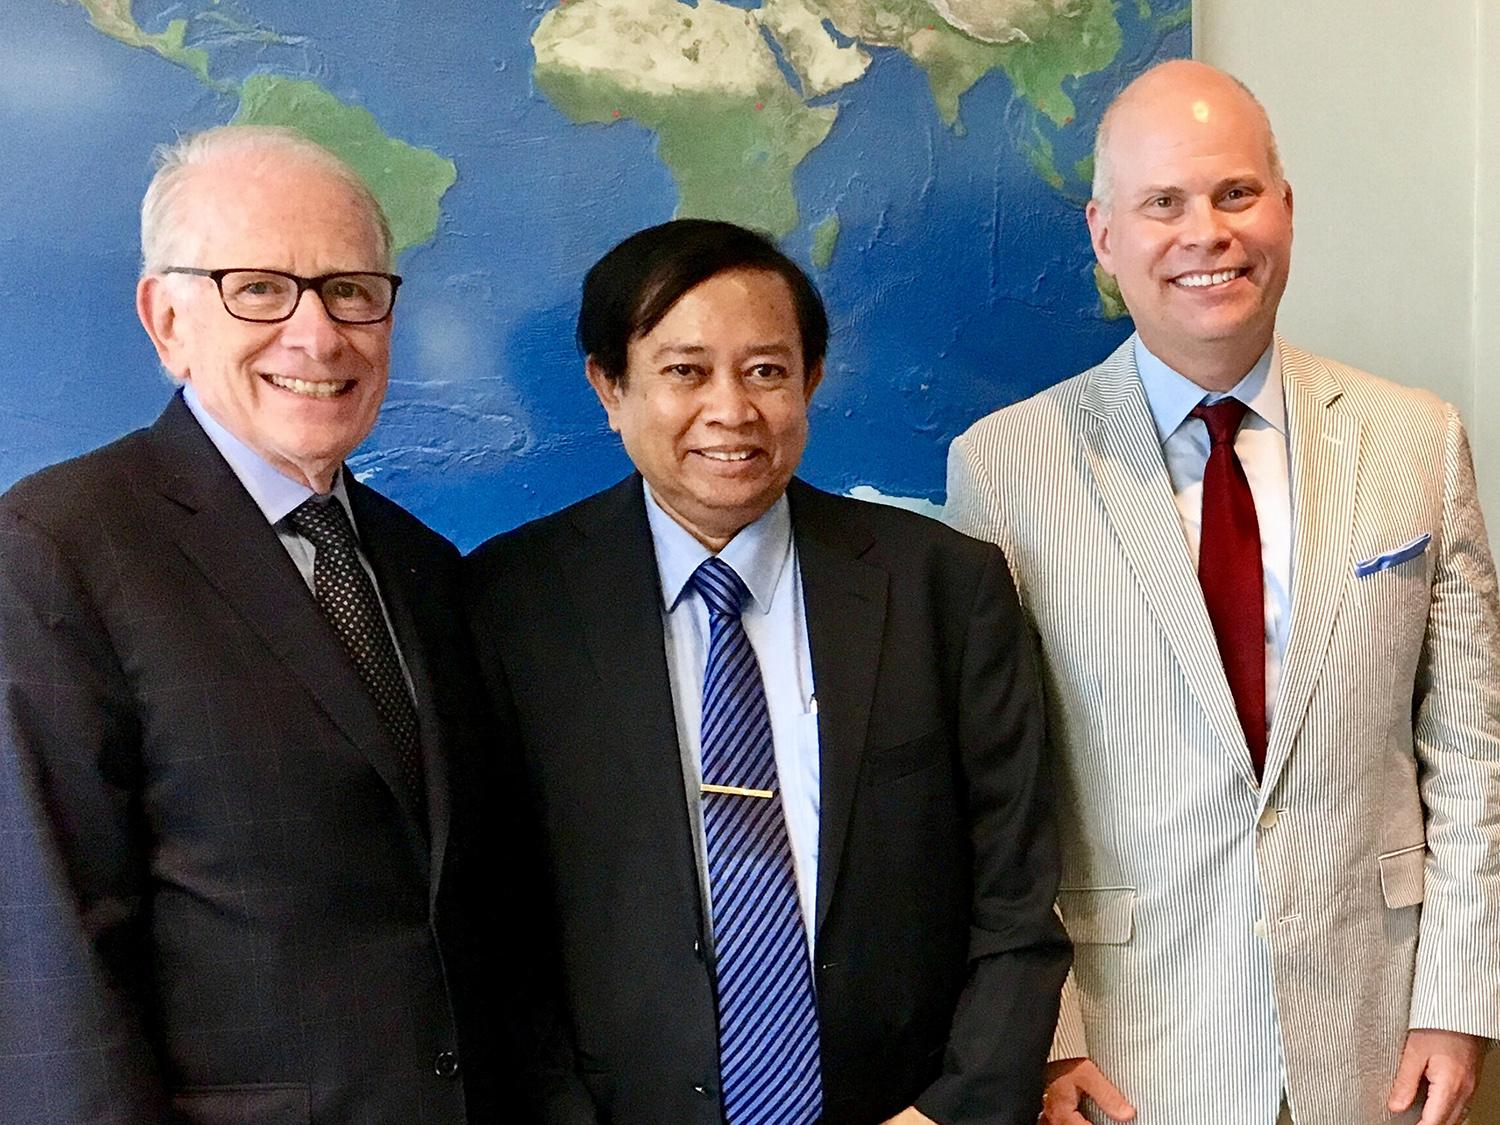 Allan Goodman (left), president of the Institute for International Education, meets in his New York City office with Joshua McKeown, director of international education and programs at SUNY Oswego, and Dr. Myint Oo, physician and educator from Myanmar